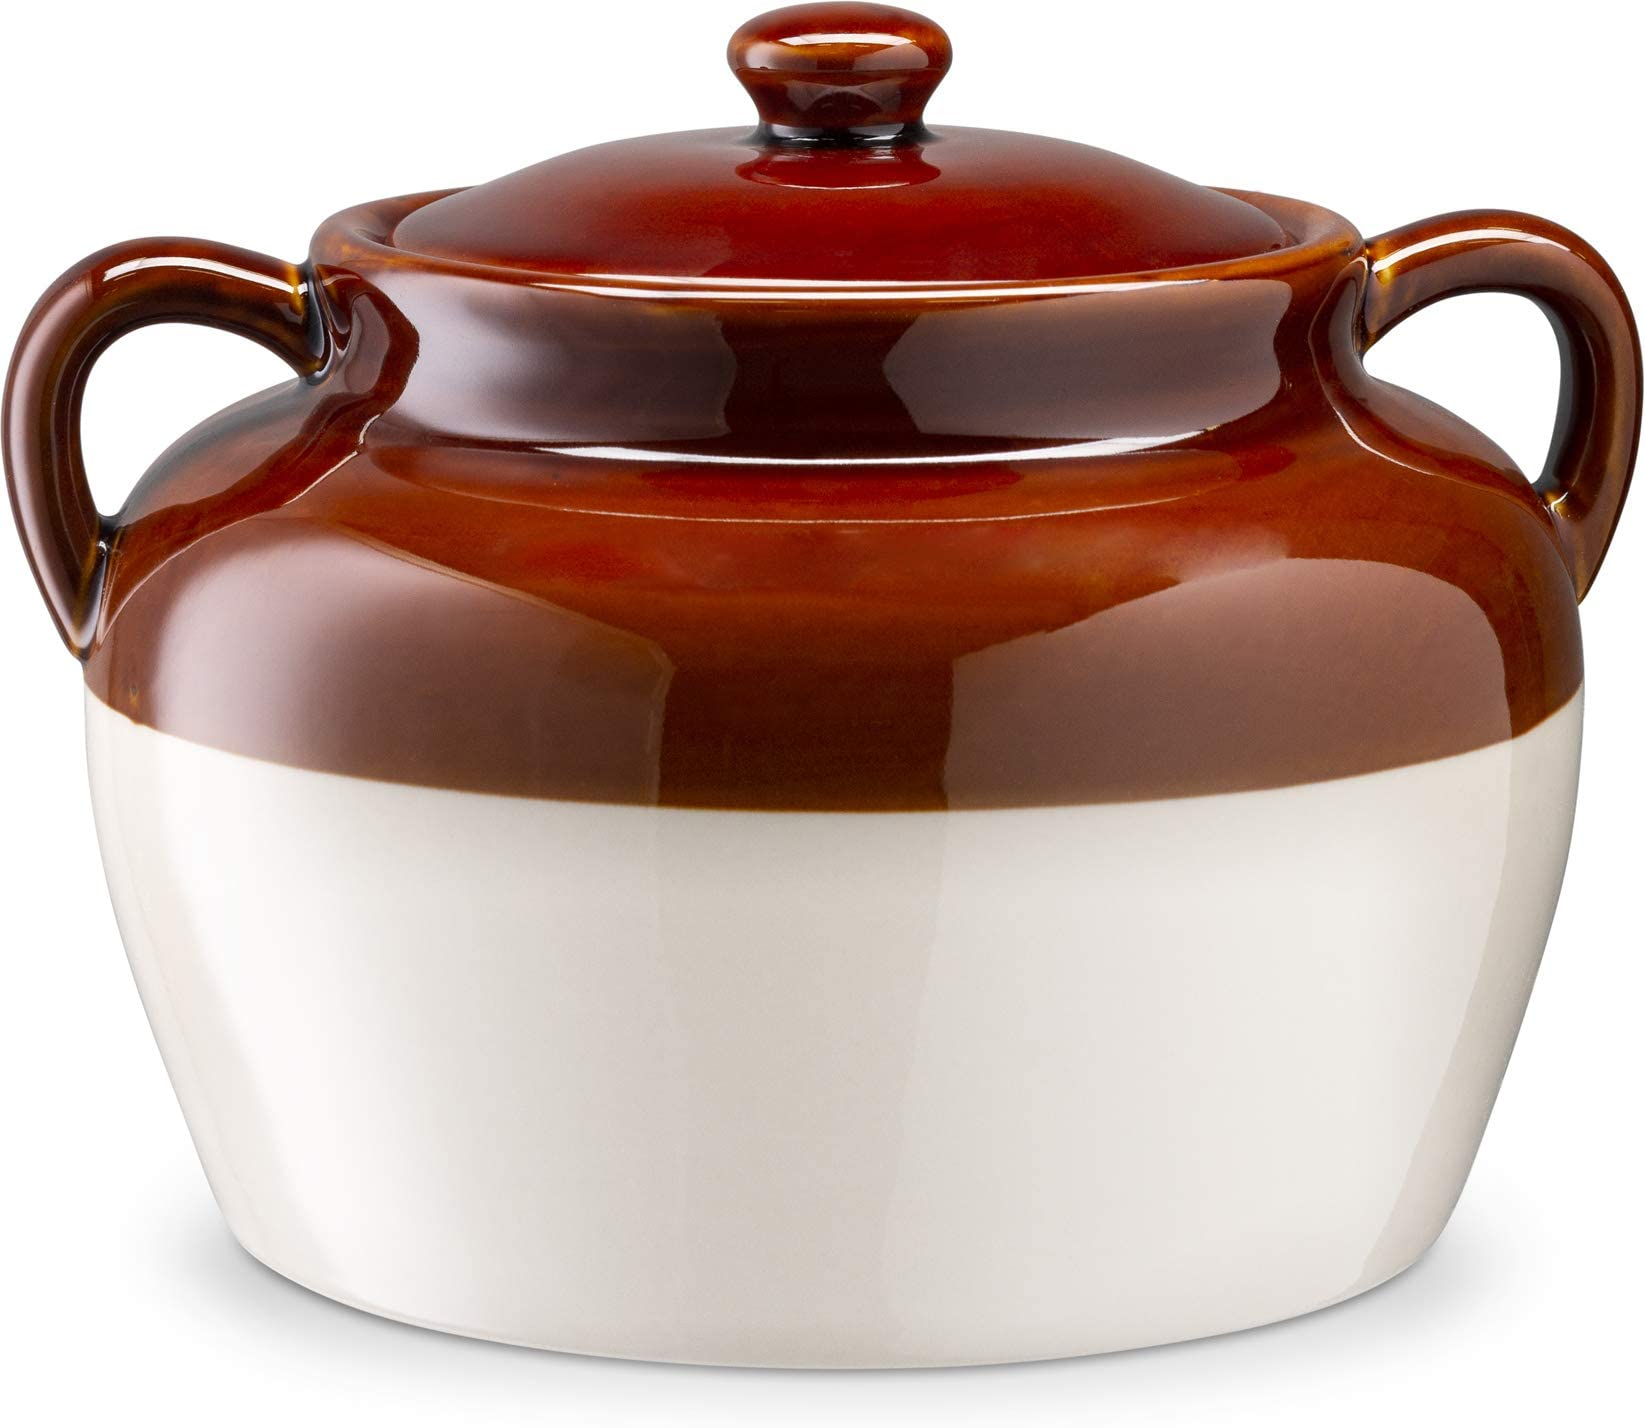 For cooking Ceramic pot Pottery ceramic Functional Pottery Pot for baking Pottery handmade IN STOCK